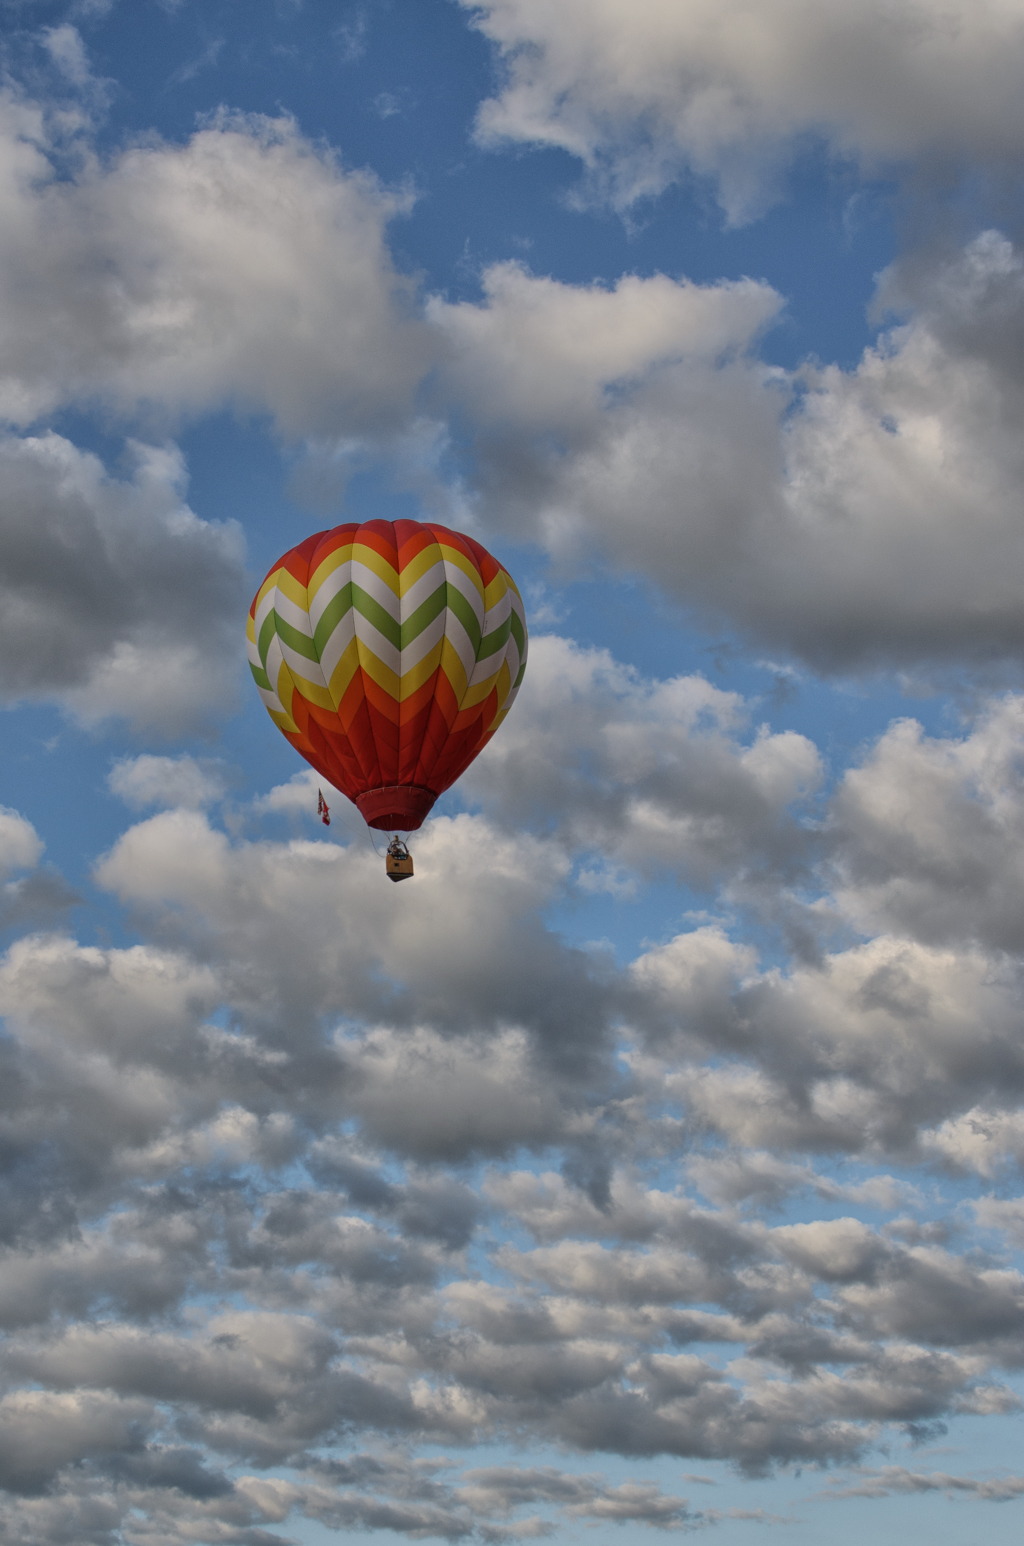 32nd annual New Jersey Festival of Ballooning, wpid14609 NIKON D5100 20140725 1097 Edit